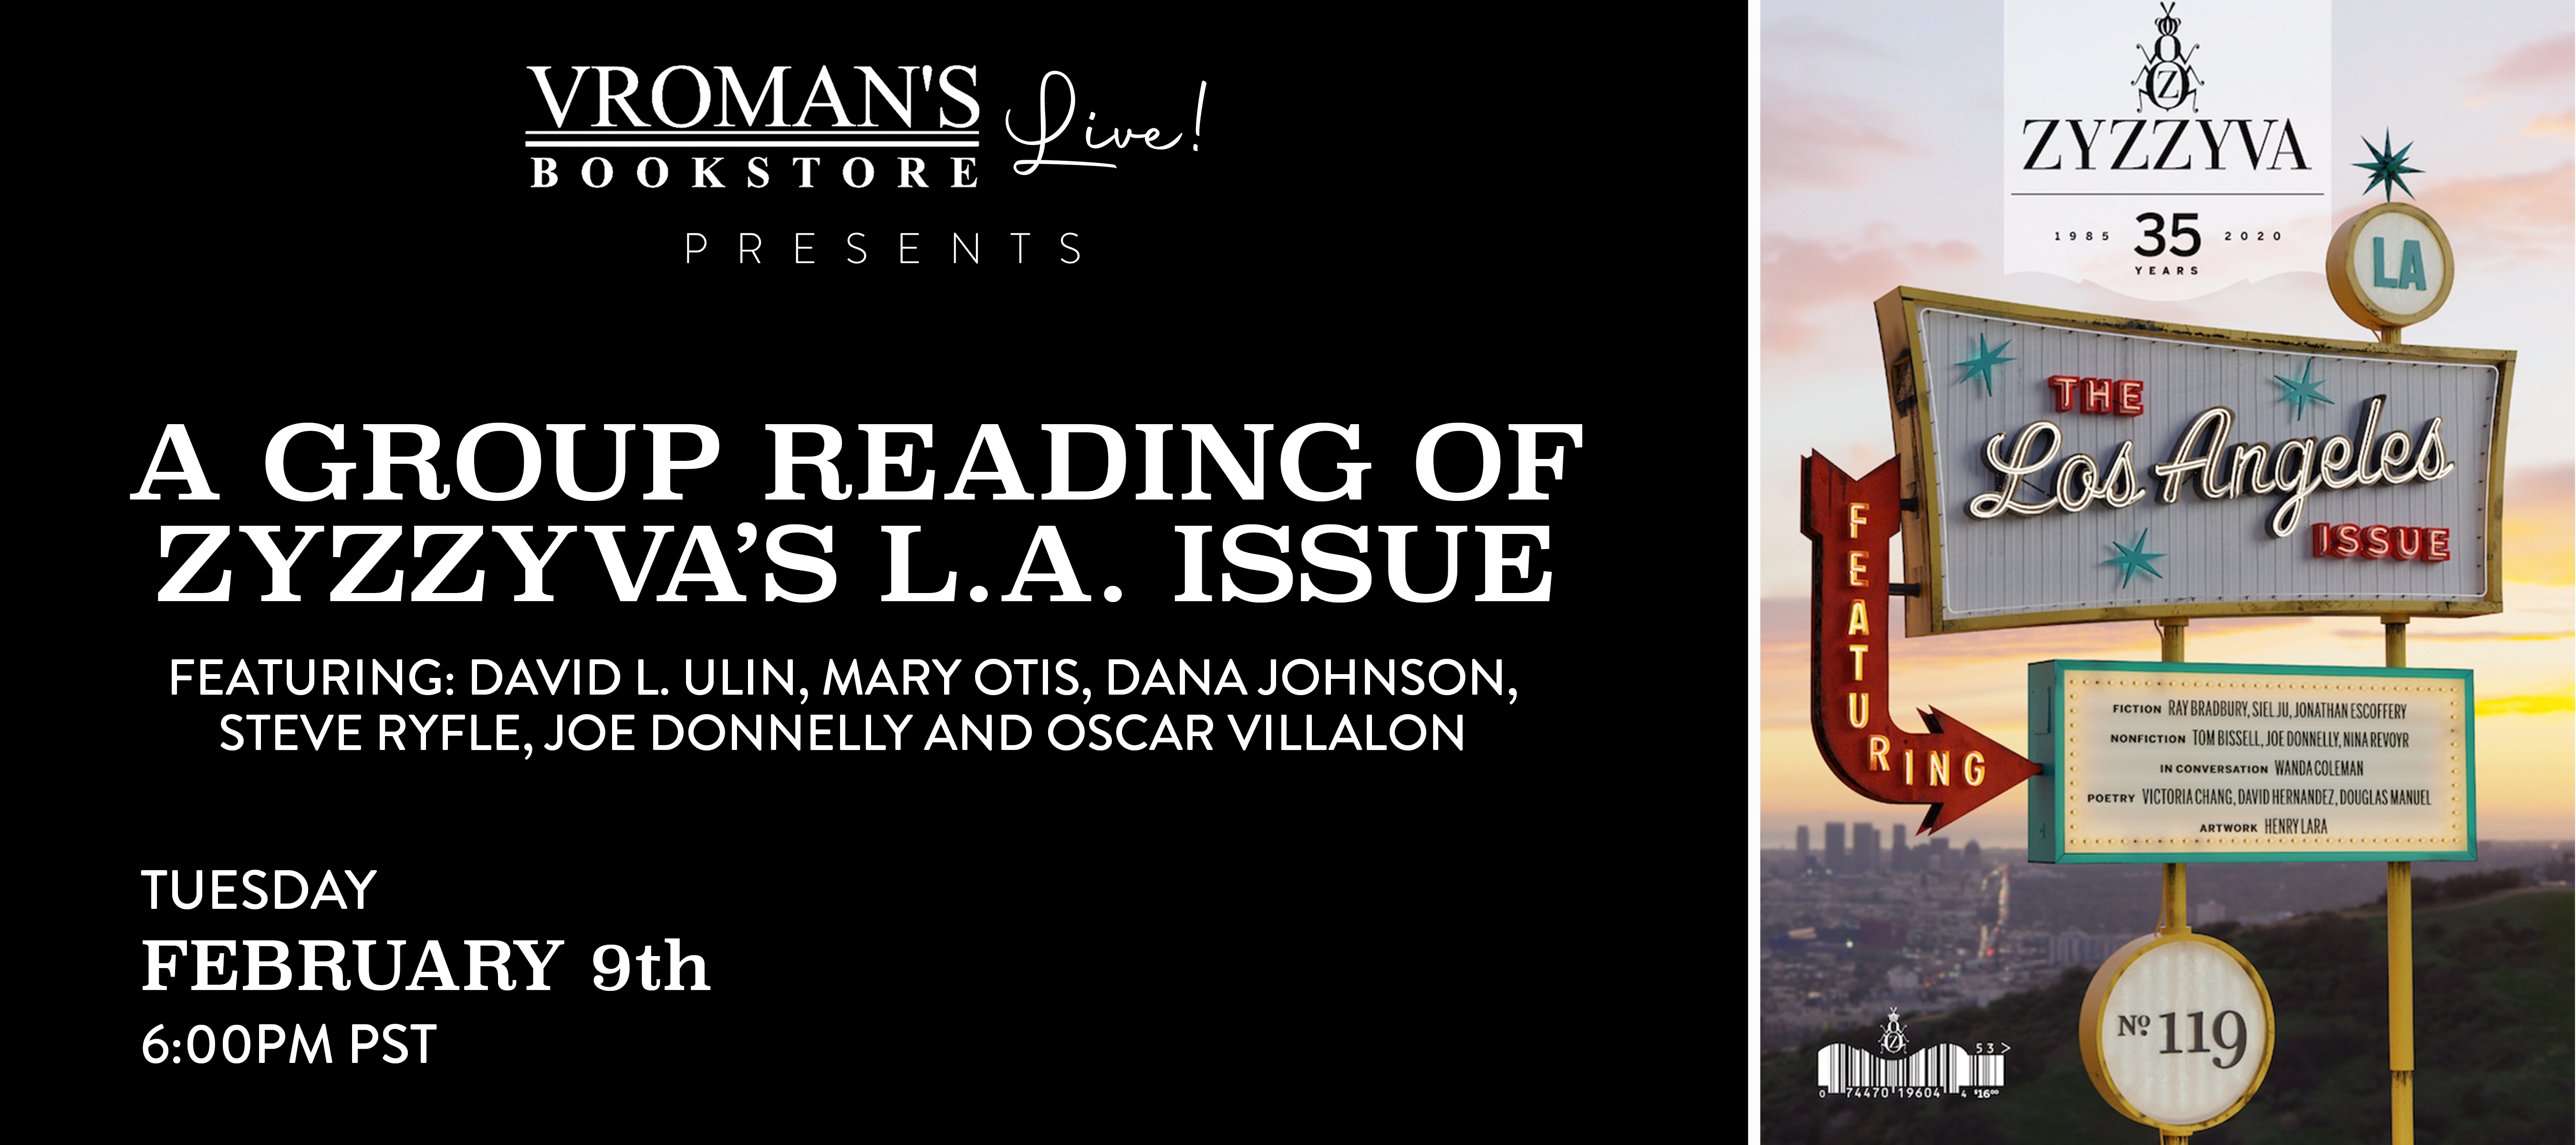 Group reading of ZYZZYVA's LA Issue on Tuesday February 9th at 6pm PST